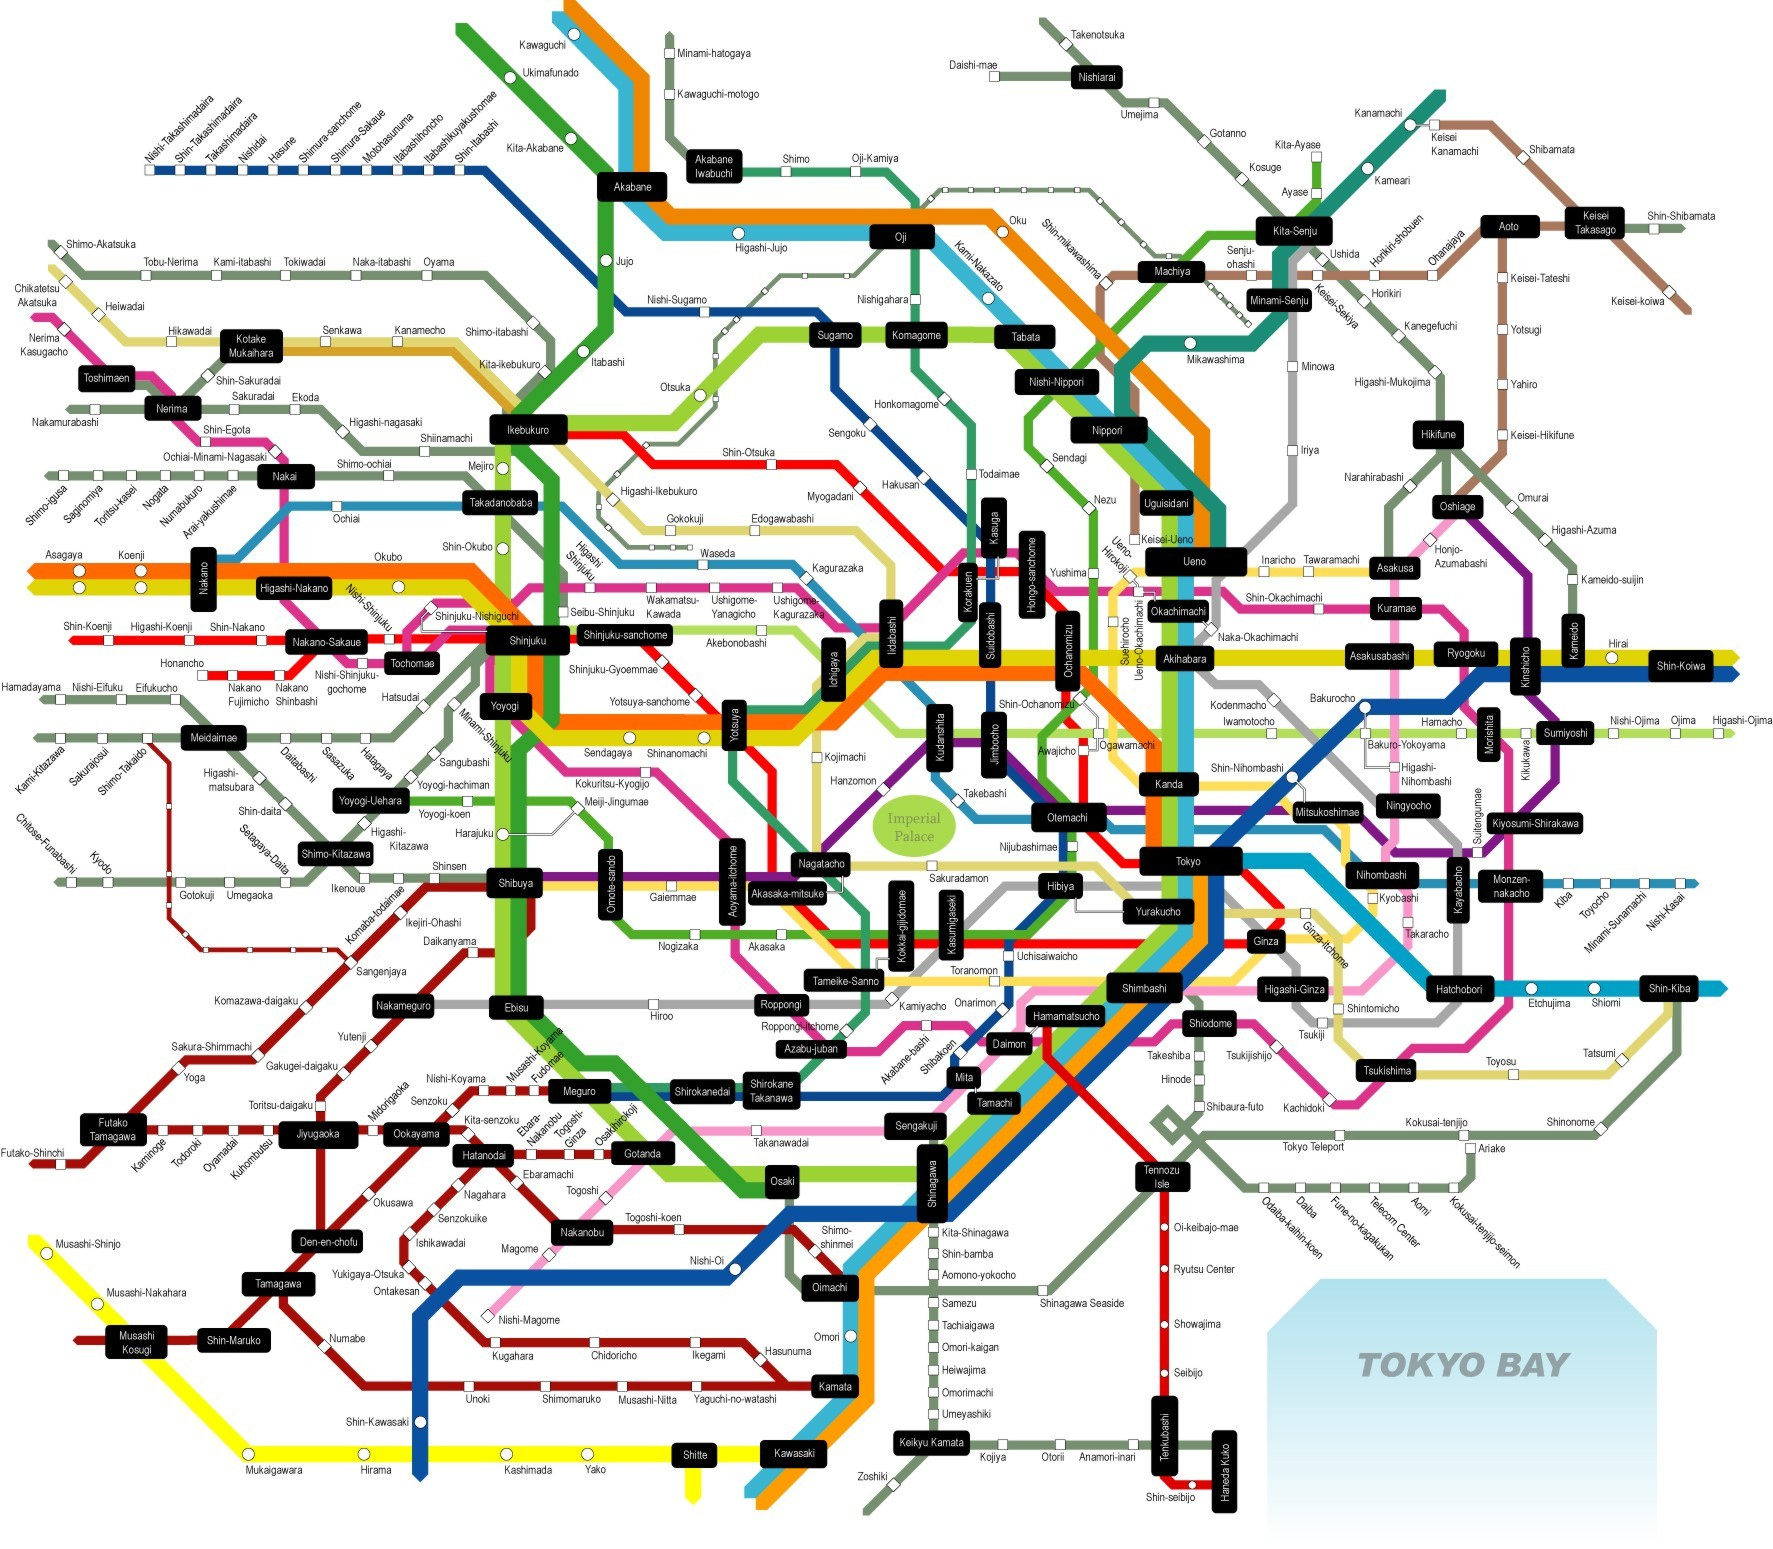 Tokyo subway map see map details from tokyoessentials.com